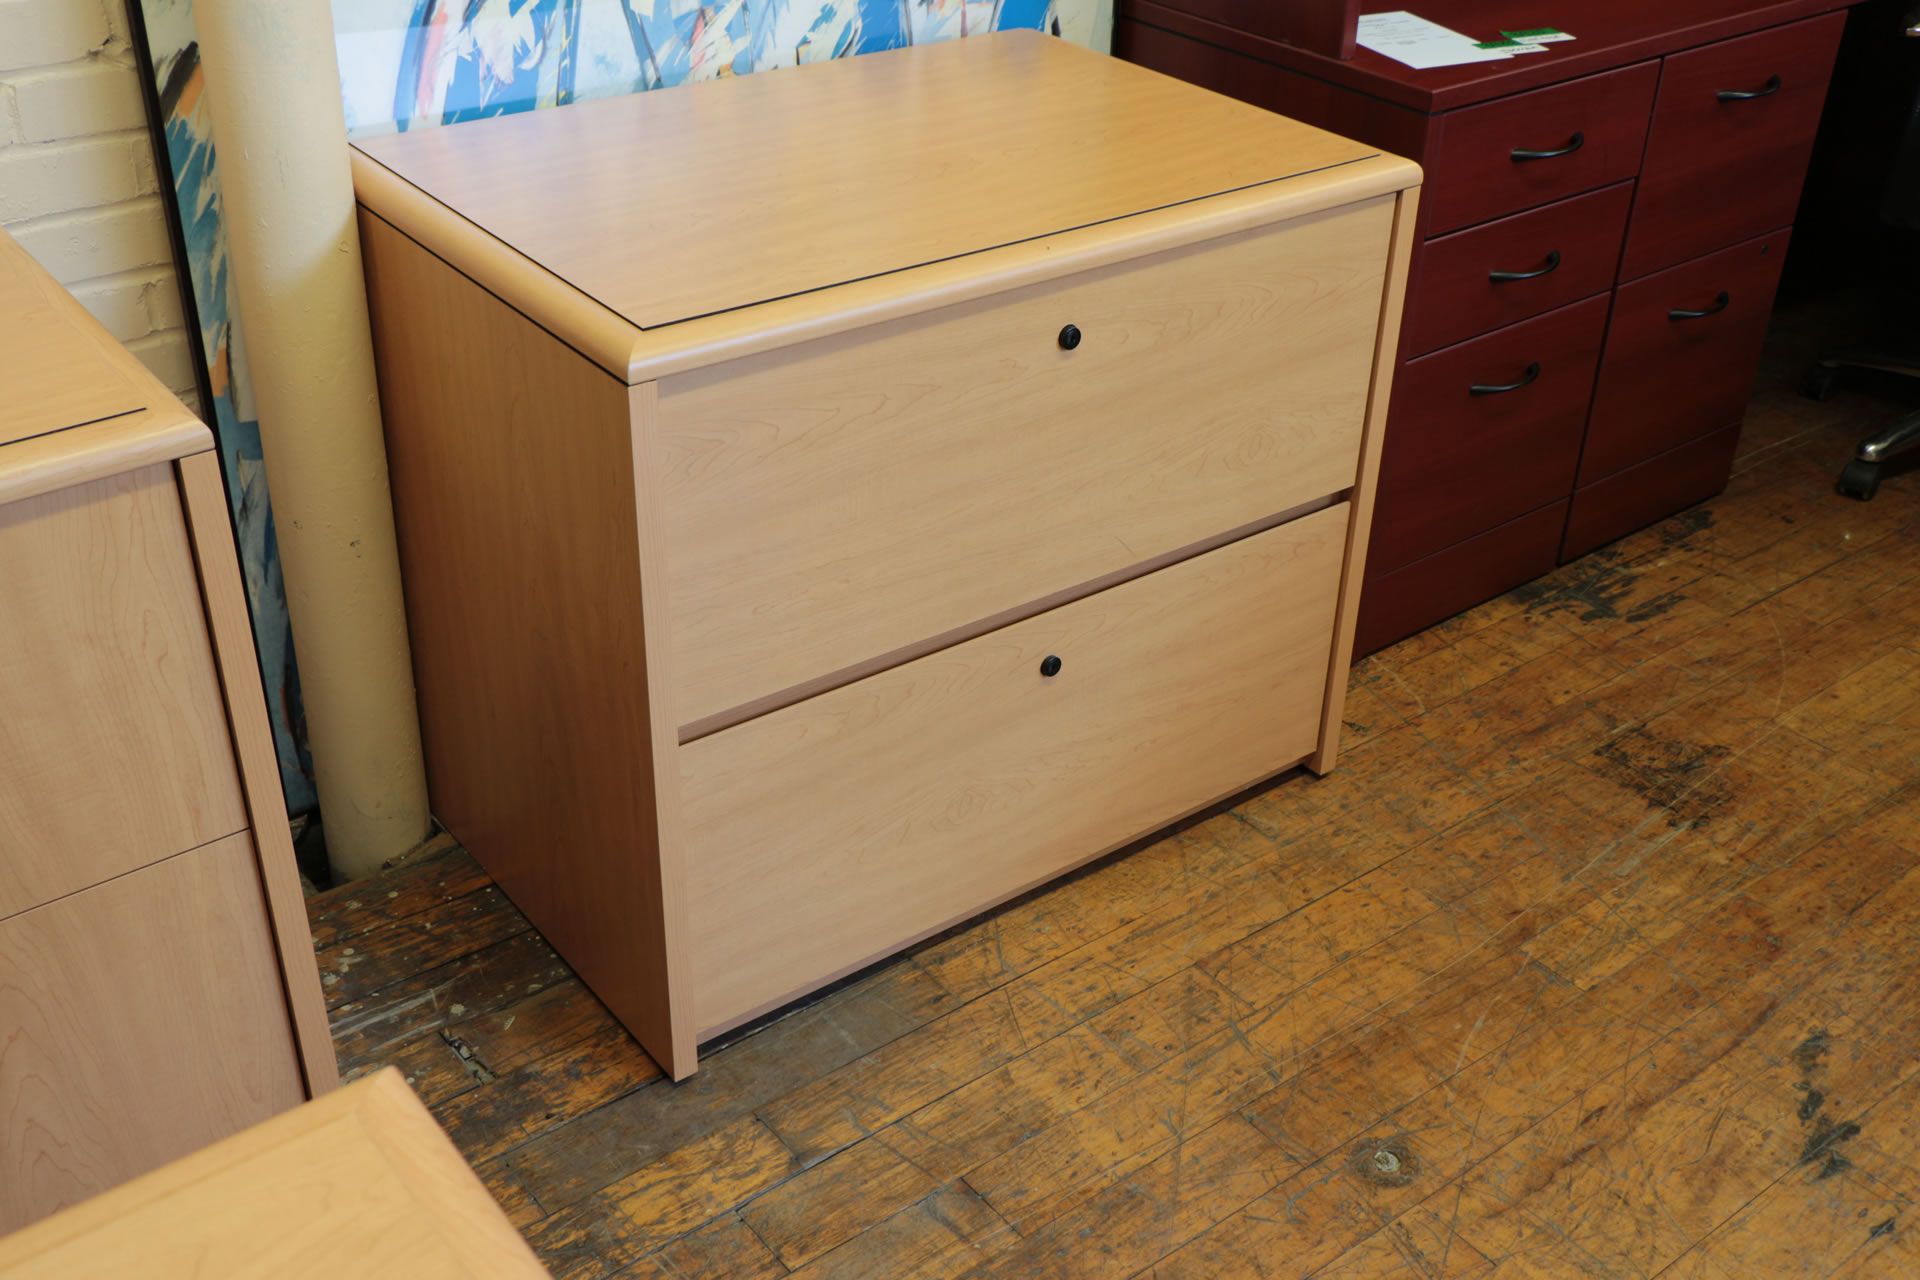 peartreeofficefurniture_peartreeofficefurniture_peartreeofficefurniture_2015-06-25_14-30-08.jpg